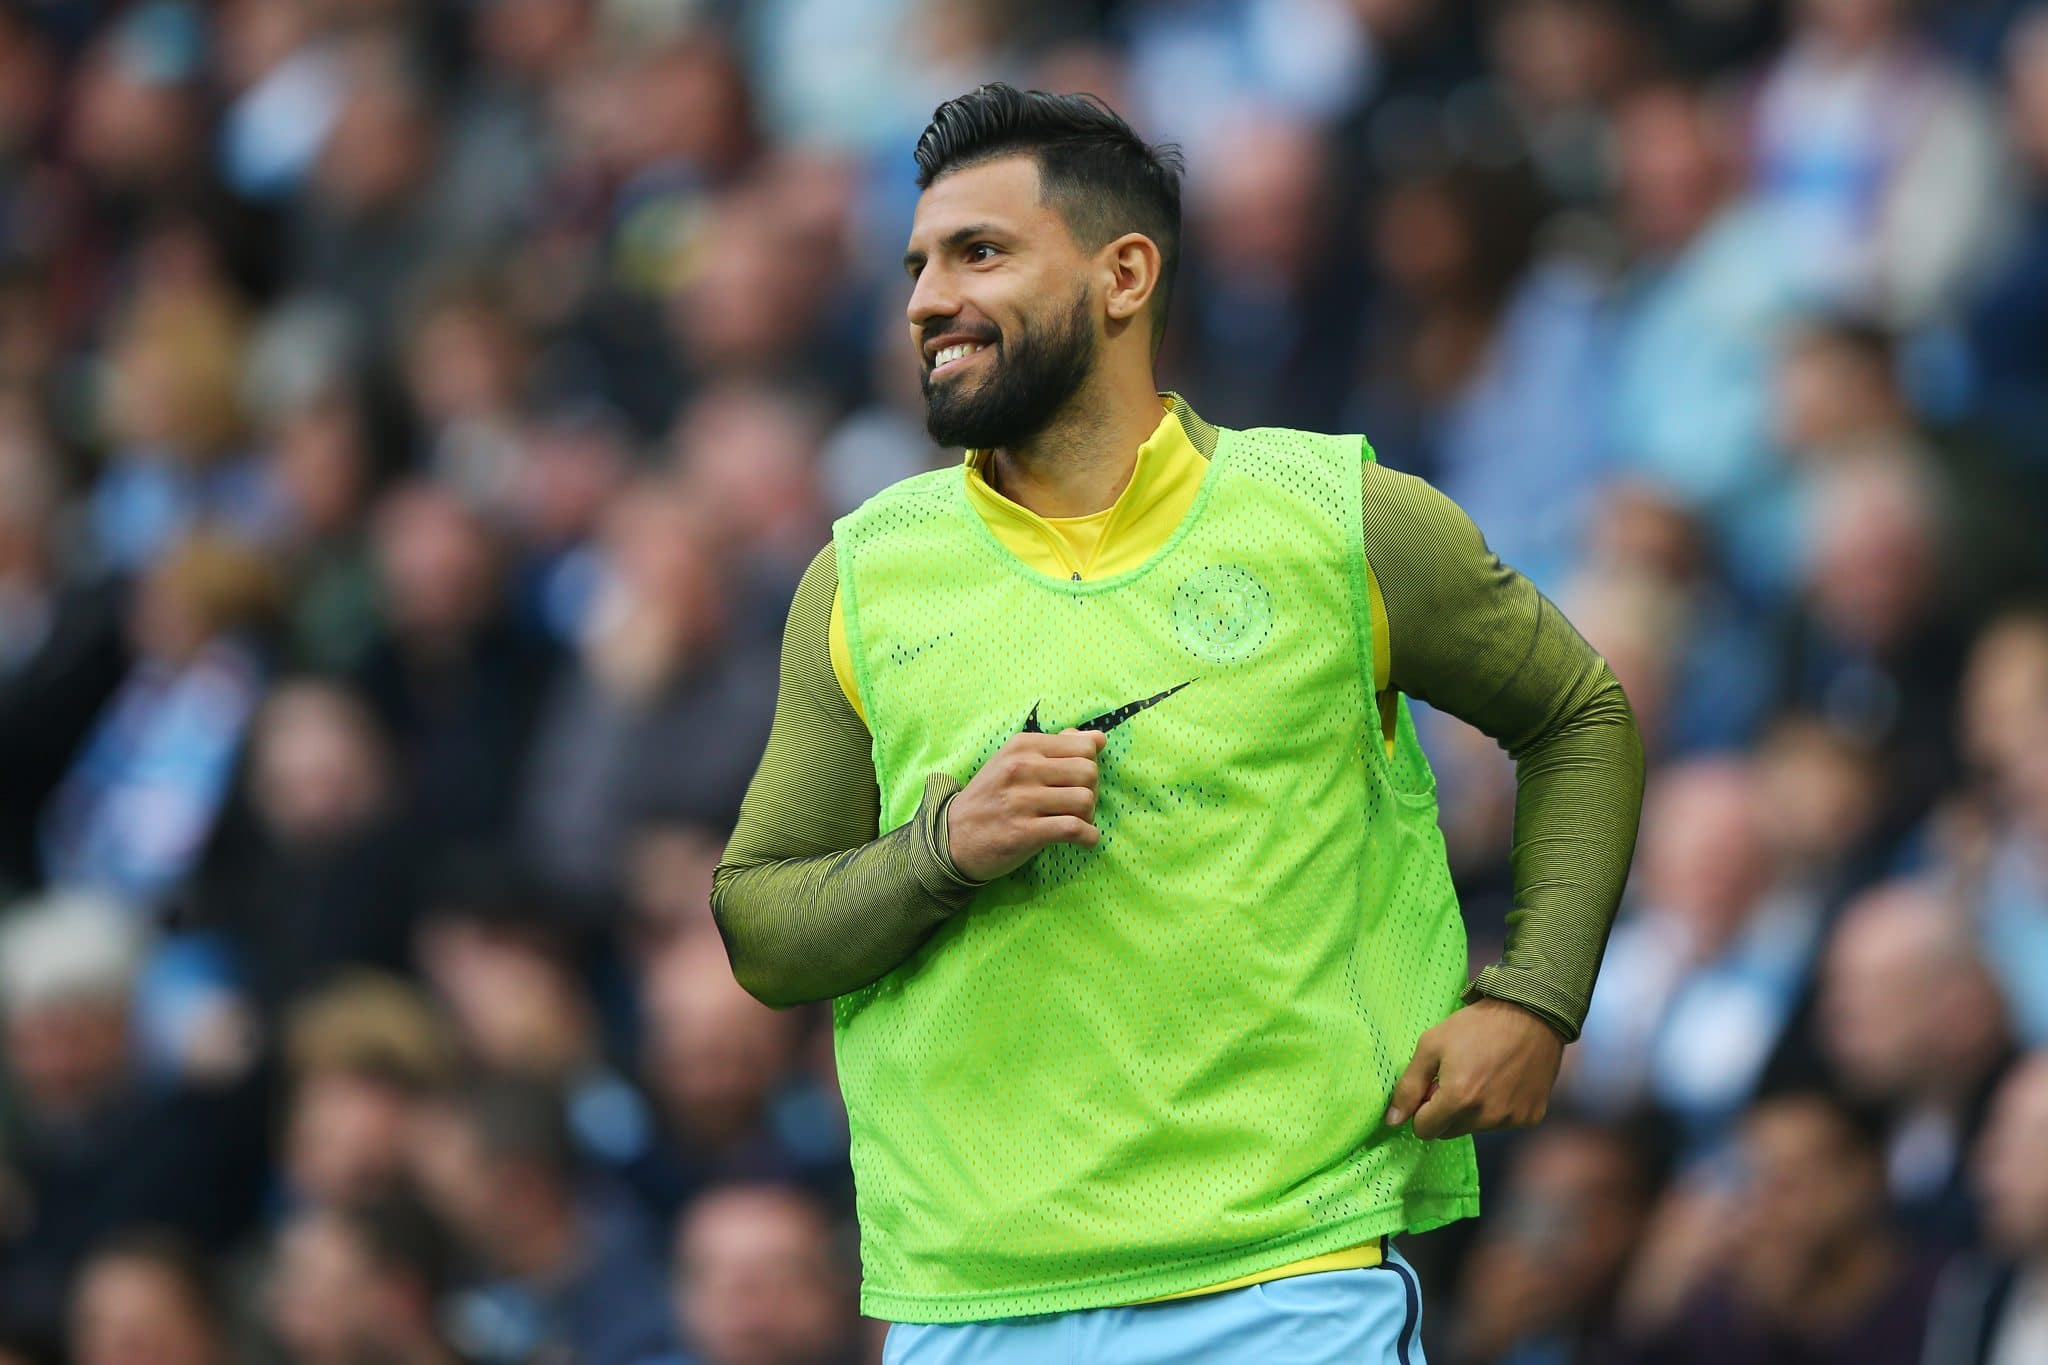 Manchester City striker Sergio Aguero warms up against Leicester City in the Premier League